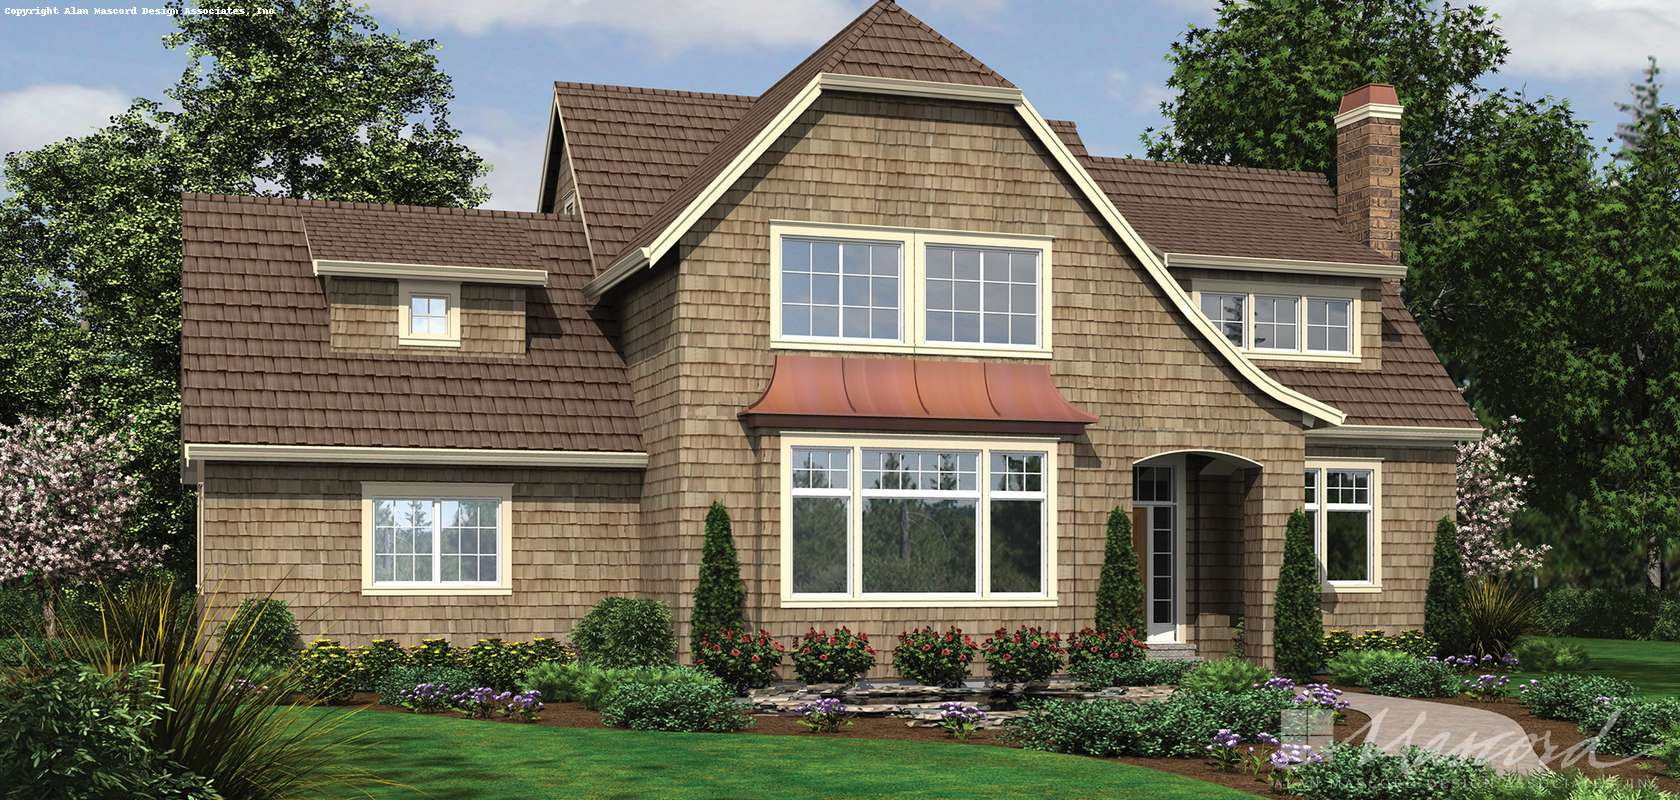 Mascord House Plan 2391: The Cannondale